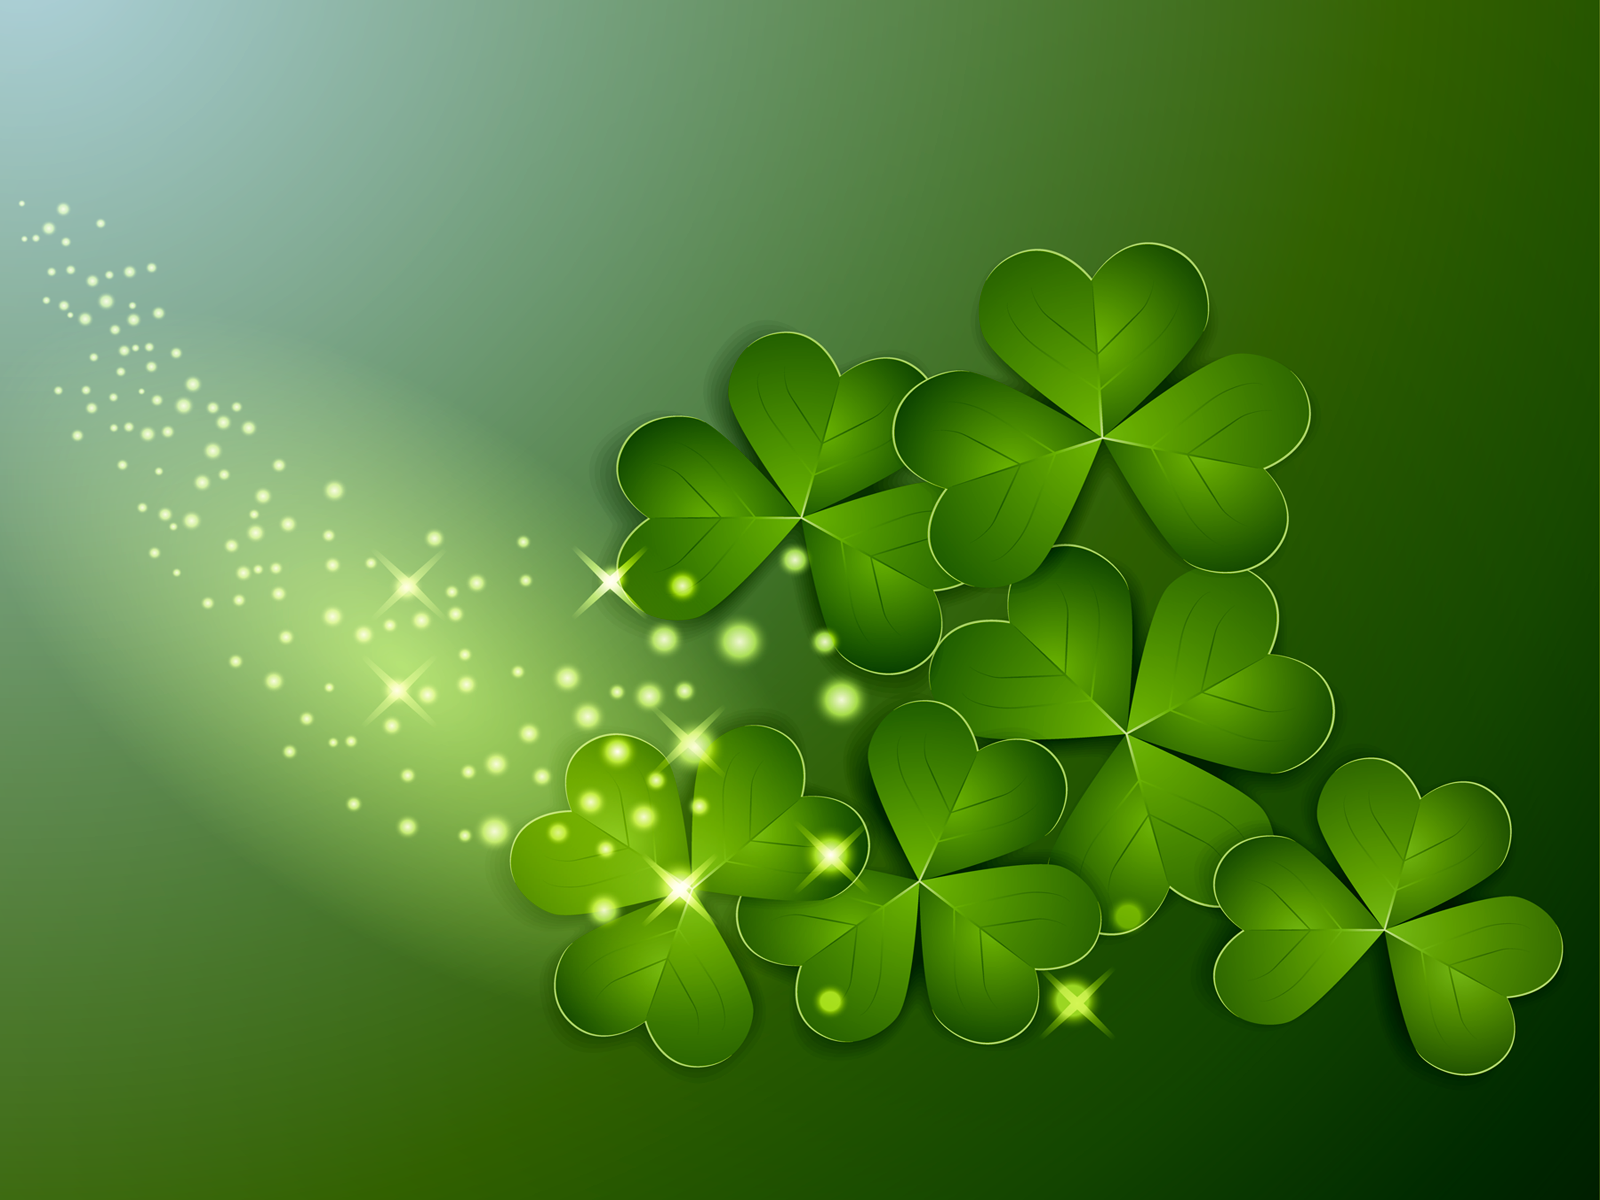 St Patrick Wallpaper